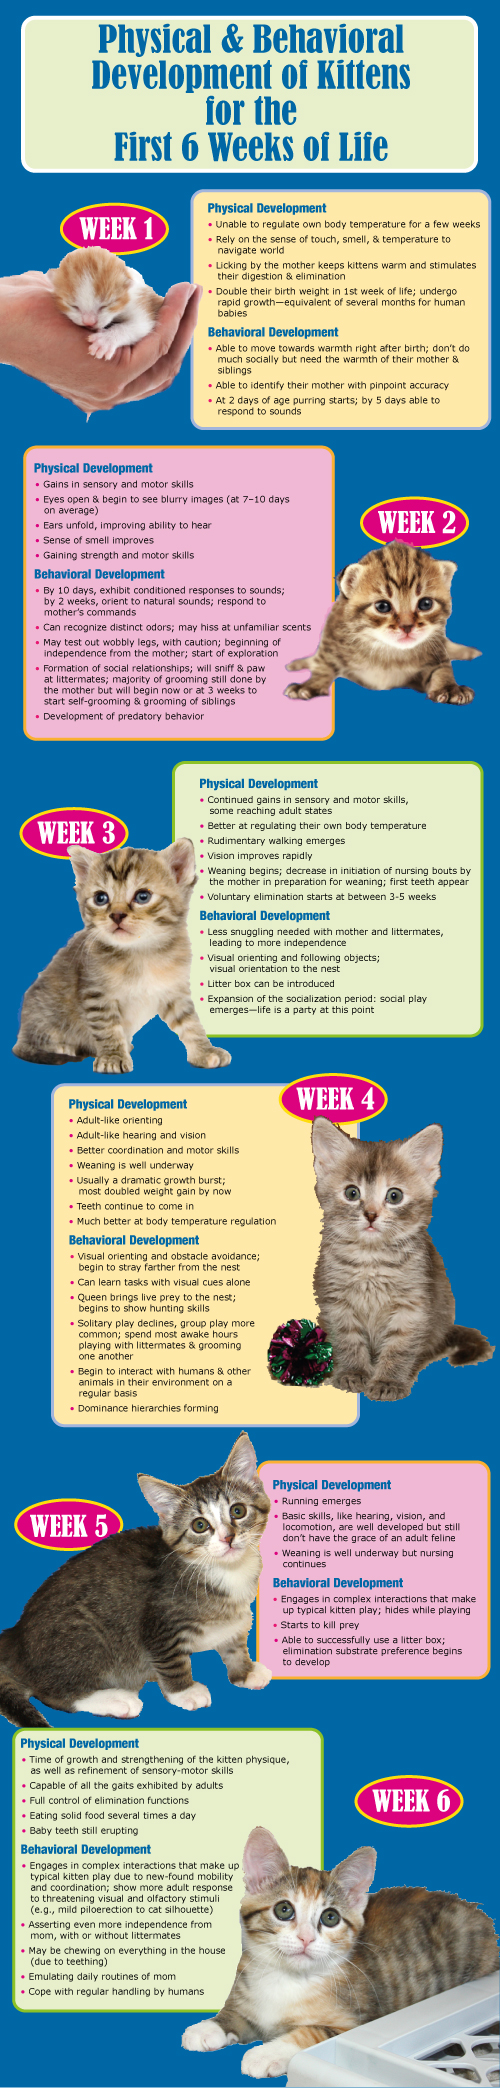 A Kitten S Antics Aren T Just Adorable And Enticing They Re A Roadmap To Physical And Behavioral Development Make Sure Th Newborn Kittens Kitten Care Kittens